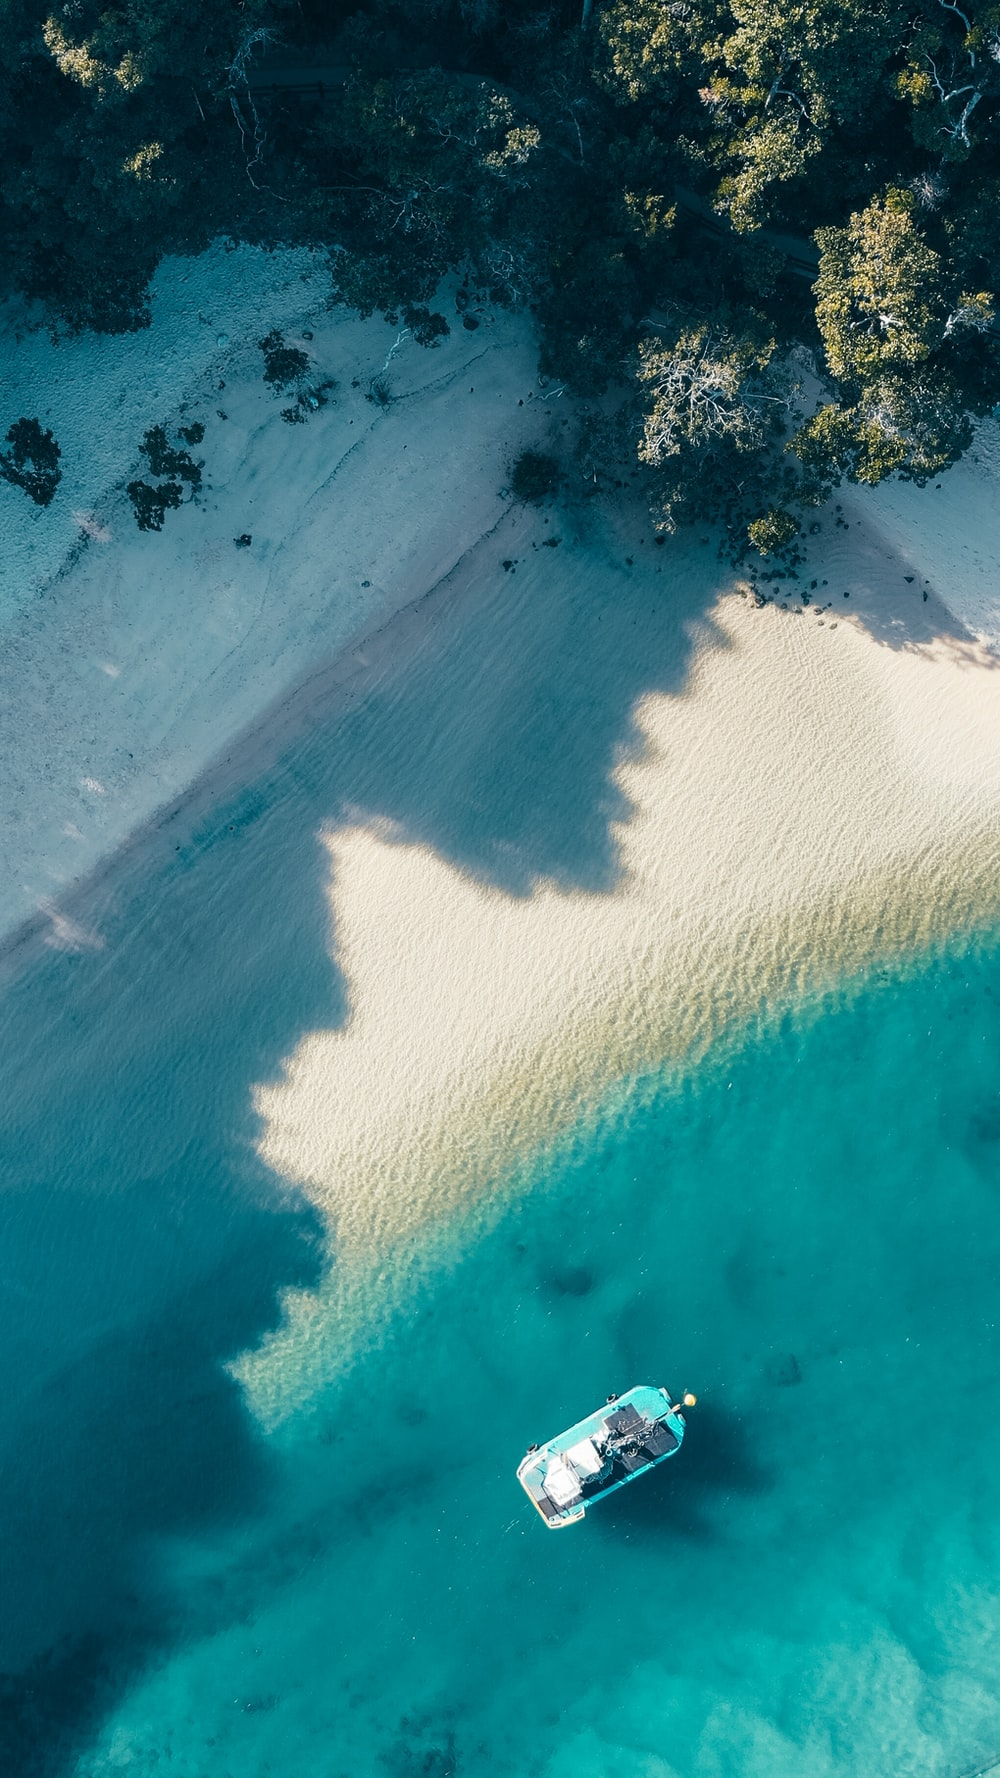 boat by shore near trees in aerial photgraphy